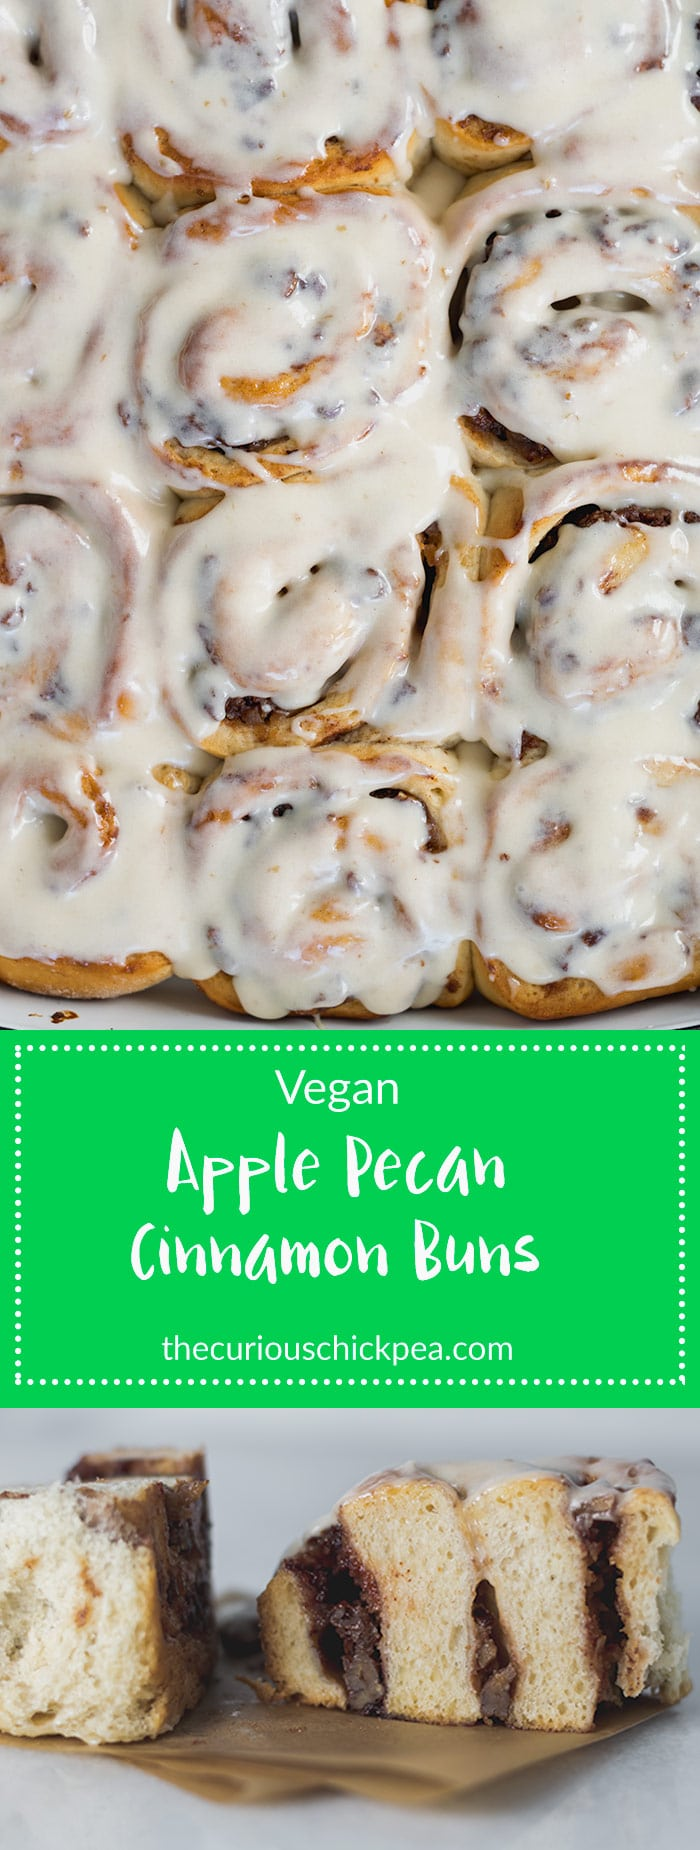 Apple Pecan Cinnamon Buns | Vegan, oversized cinnamon buns, stuffed full of apple butter and toasted pecans. They're ready in just over 2 hours and are the perfect treat! | thecuriouschickpea.com #vegan #cinnamonbuns #cinnamonrolls